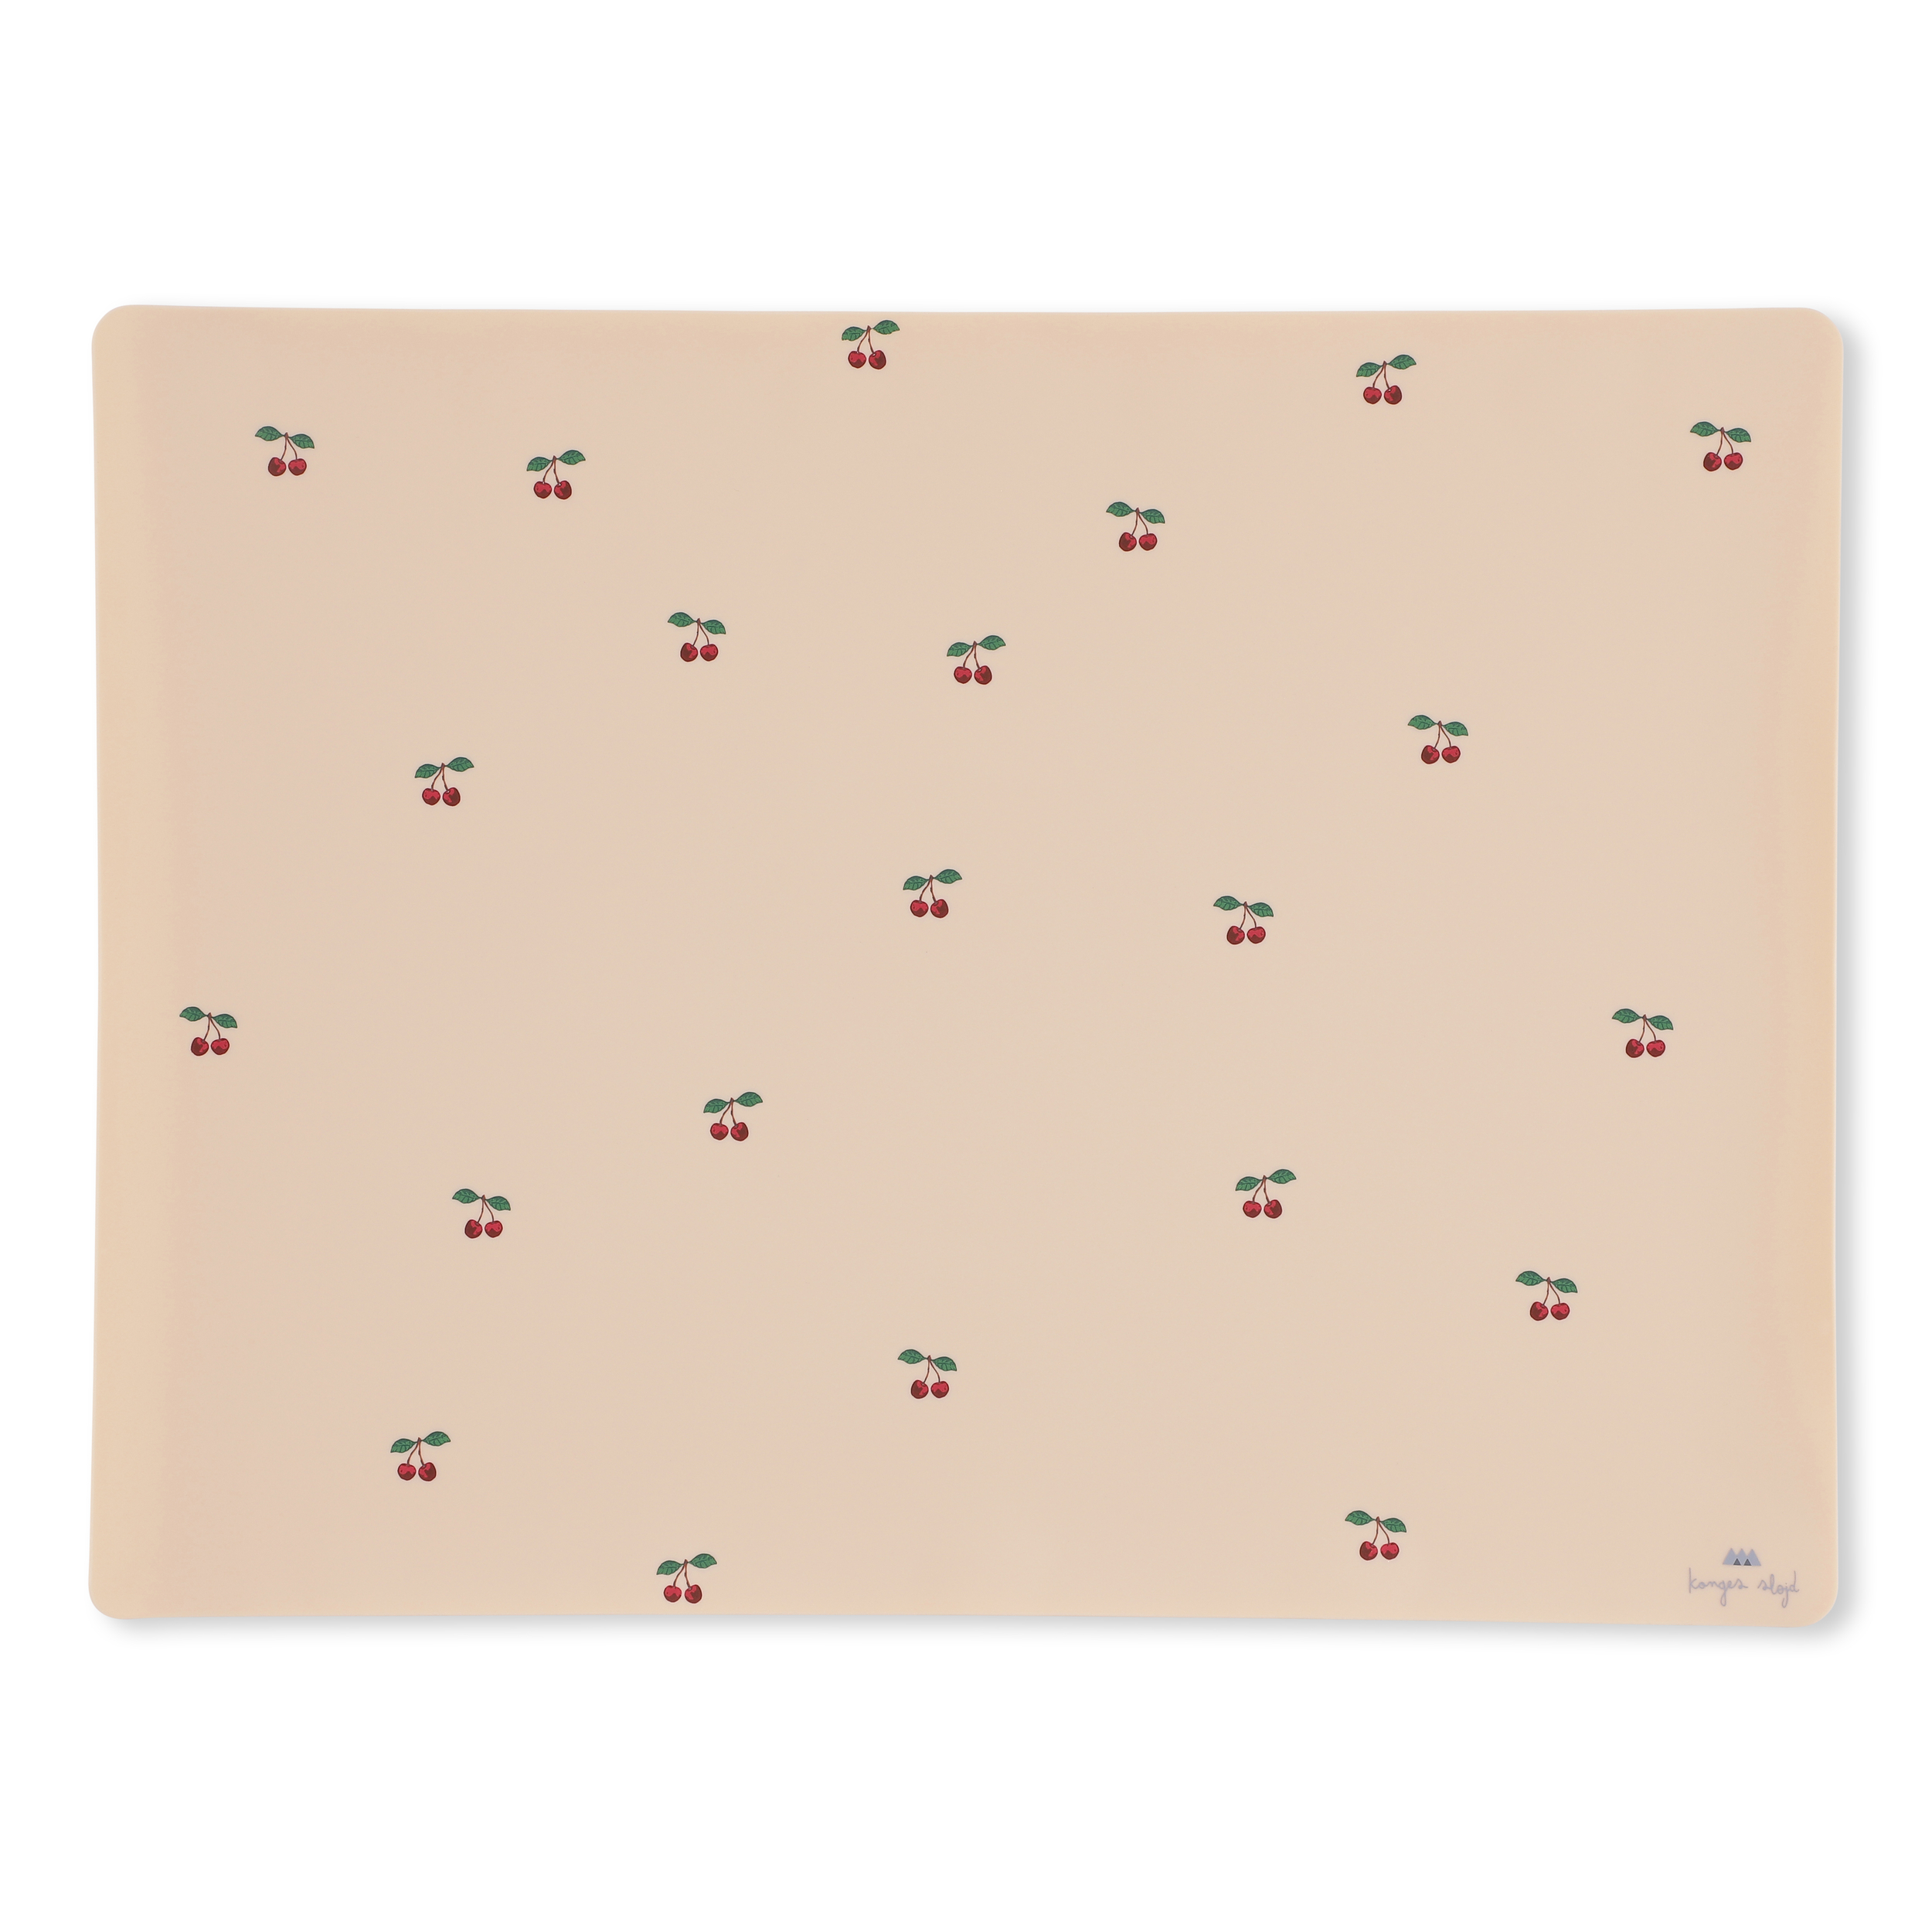 KS1361 - PLACEMAT SILICONE - CHERRY - Extra 0